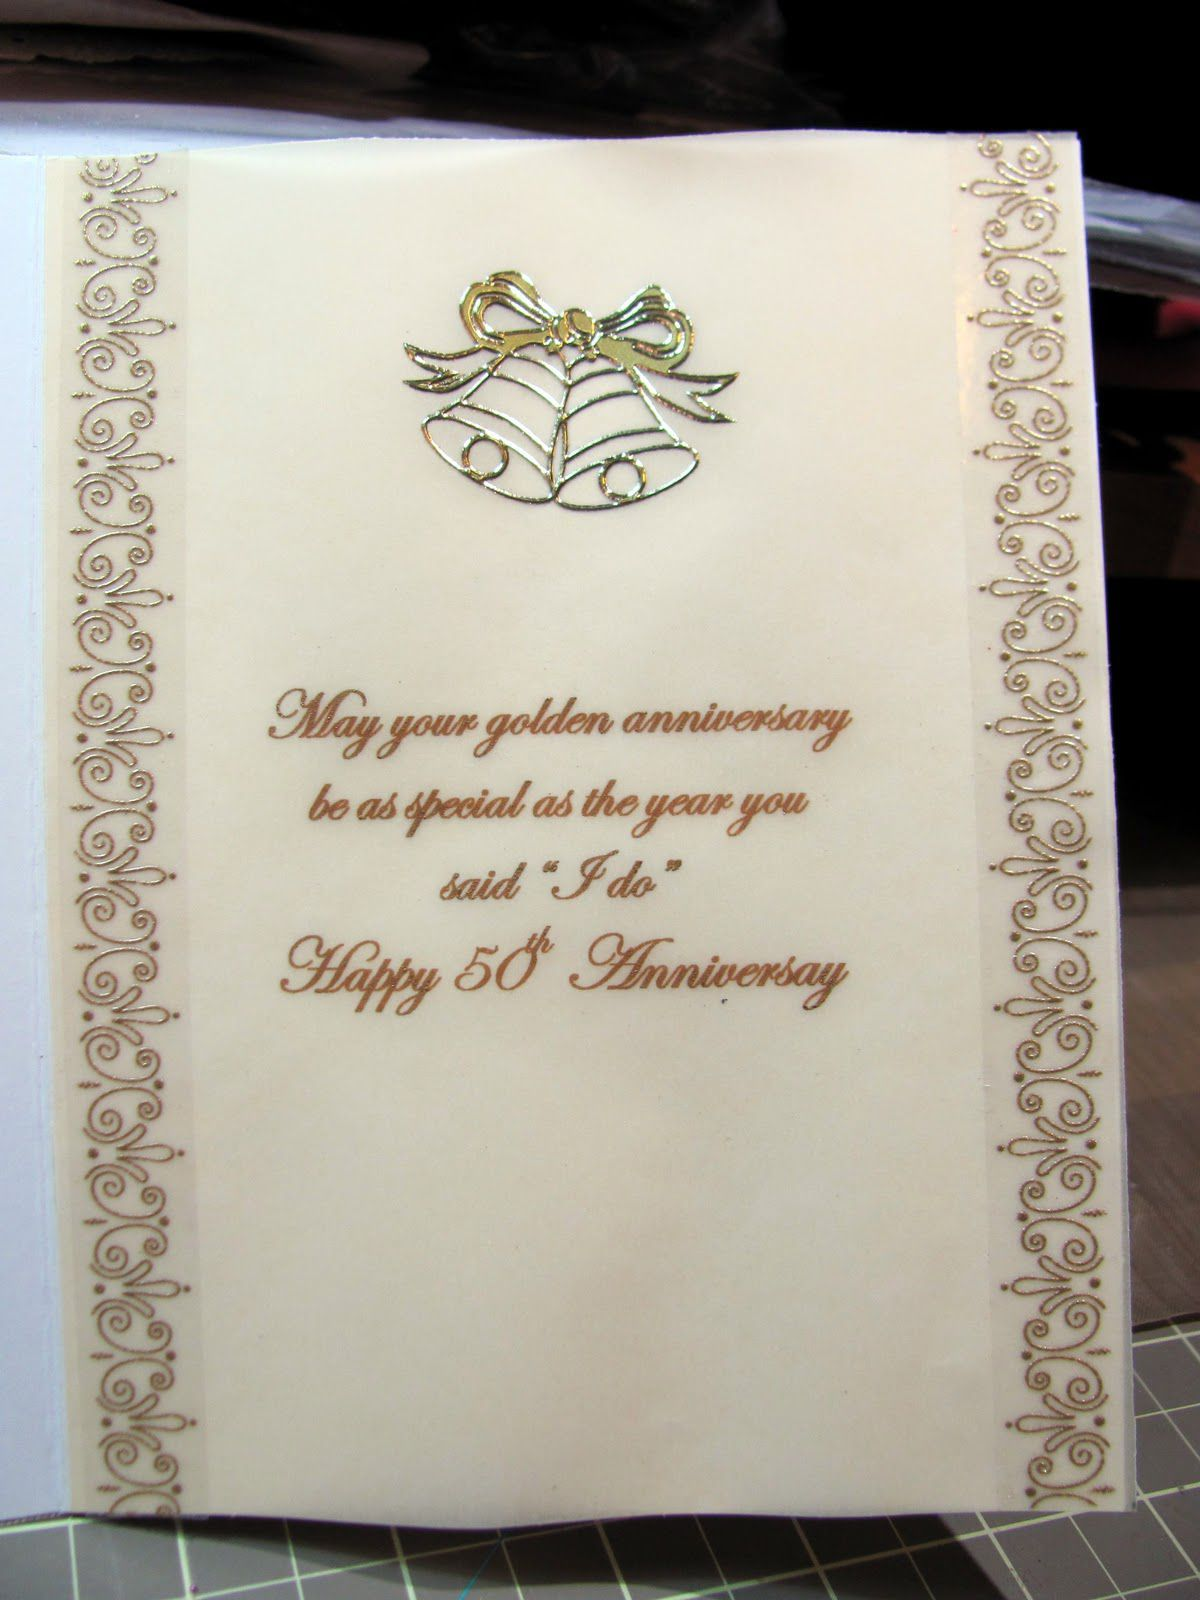 anniversary invitations wording samples | anniversary invitations ...